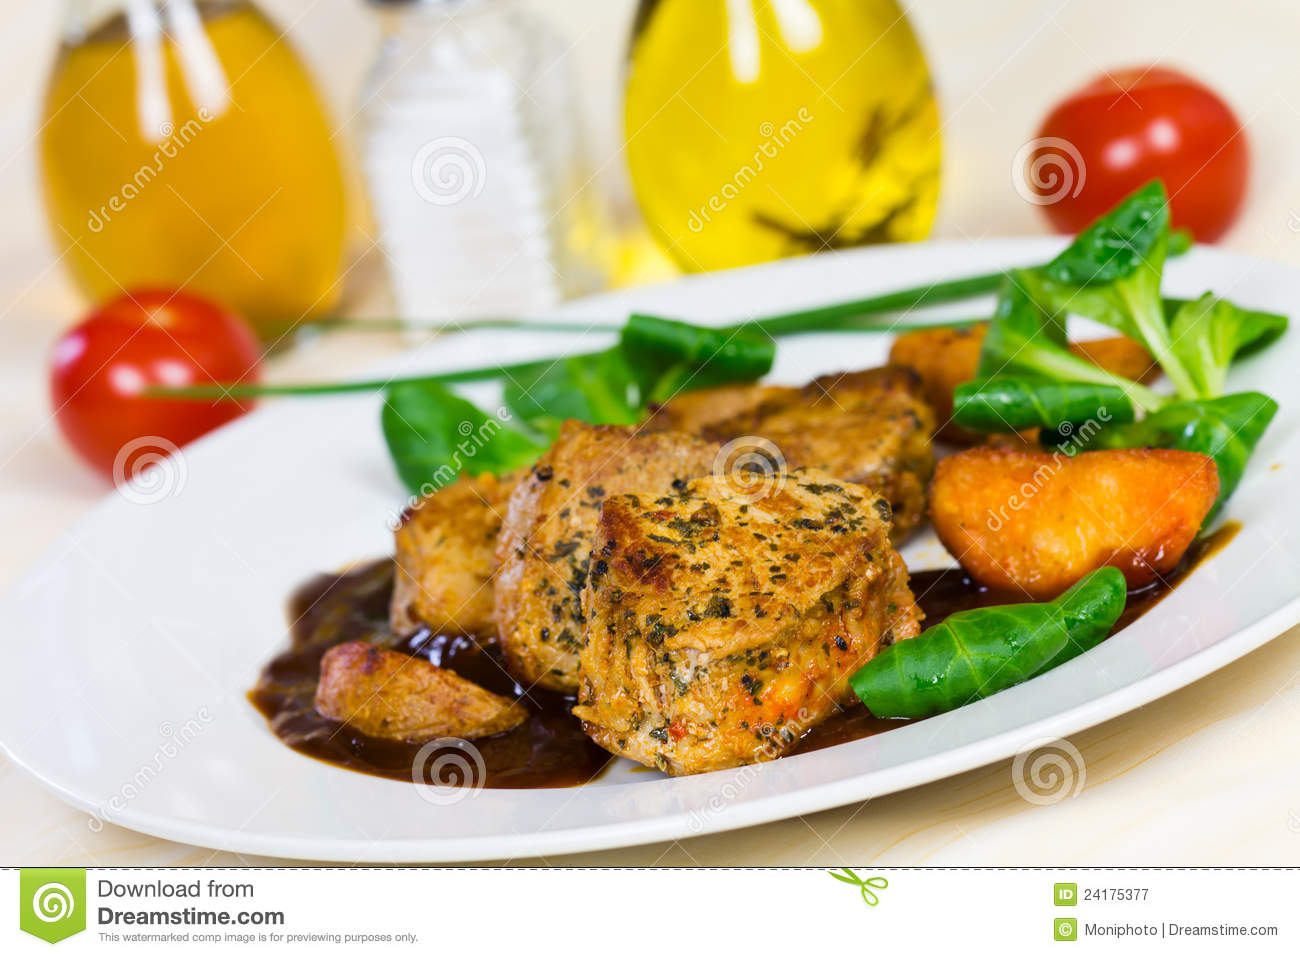 Veal Fillet- Tenderloin with Sauce and Salad